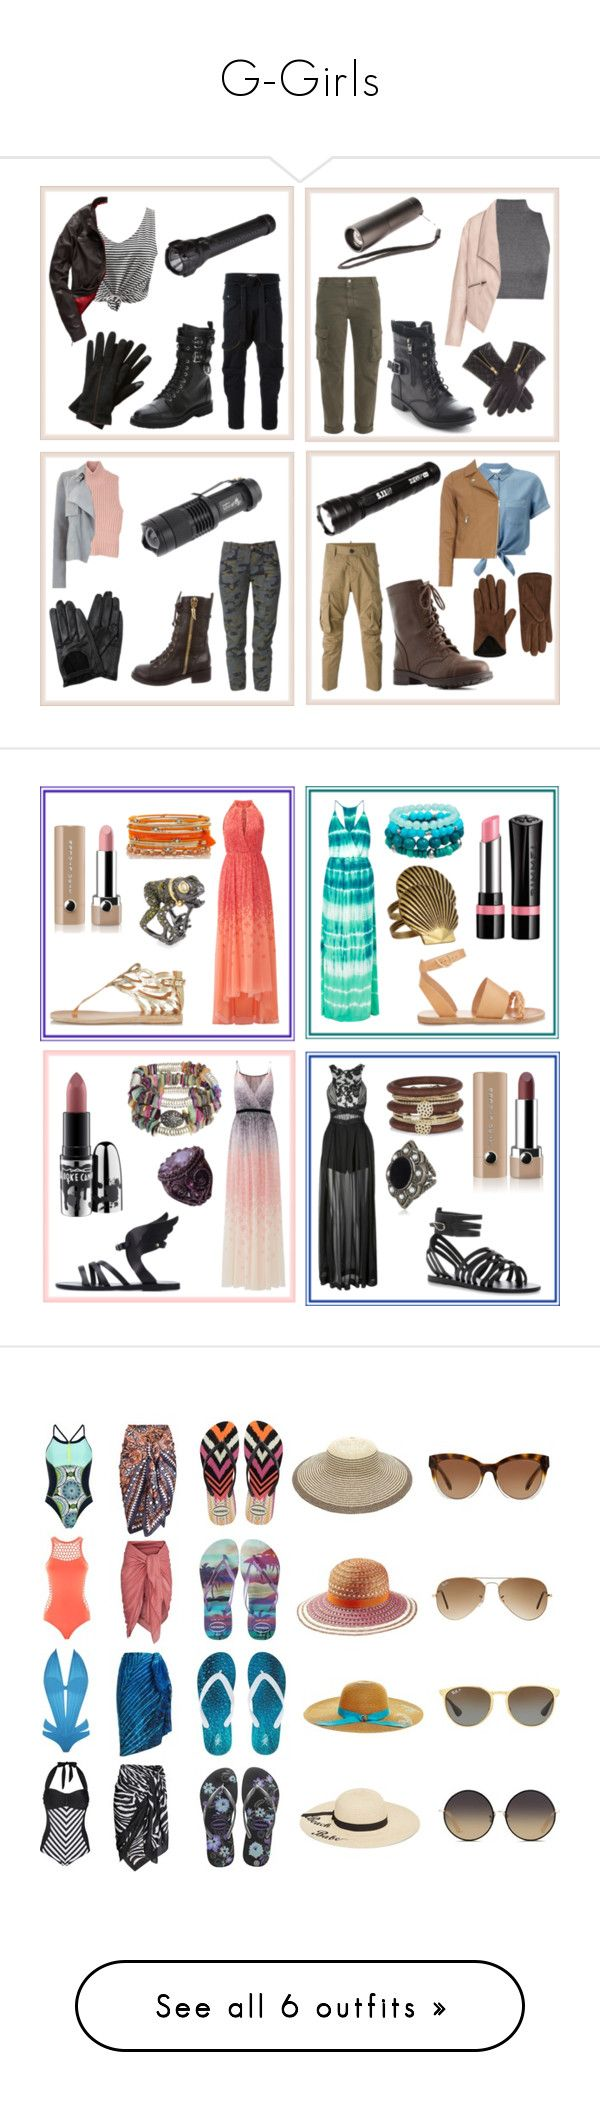 """G-Girls"" by cianne-hale on Polyvore featuring Miss Selfridge, Diesel Black Gold, Mint Velvet, Zizzi, Dorothy Perkins, Superdry, STELLA McCARTNEY, Veronica Beard, Faith Connexion and Dsquared2"